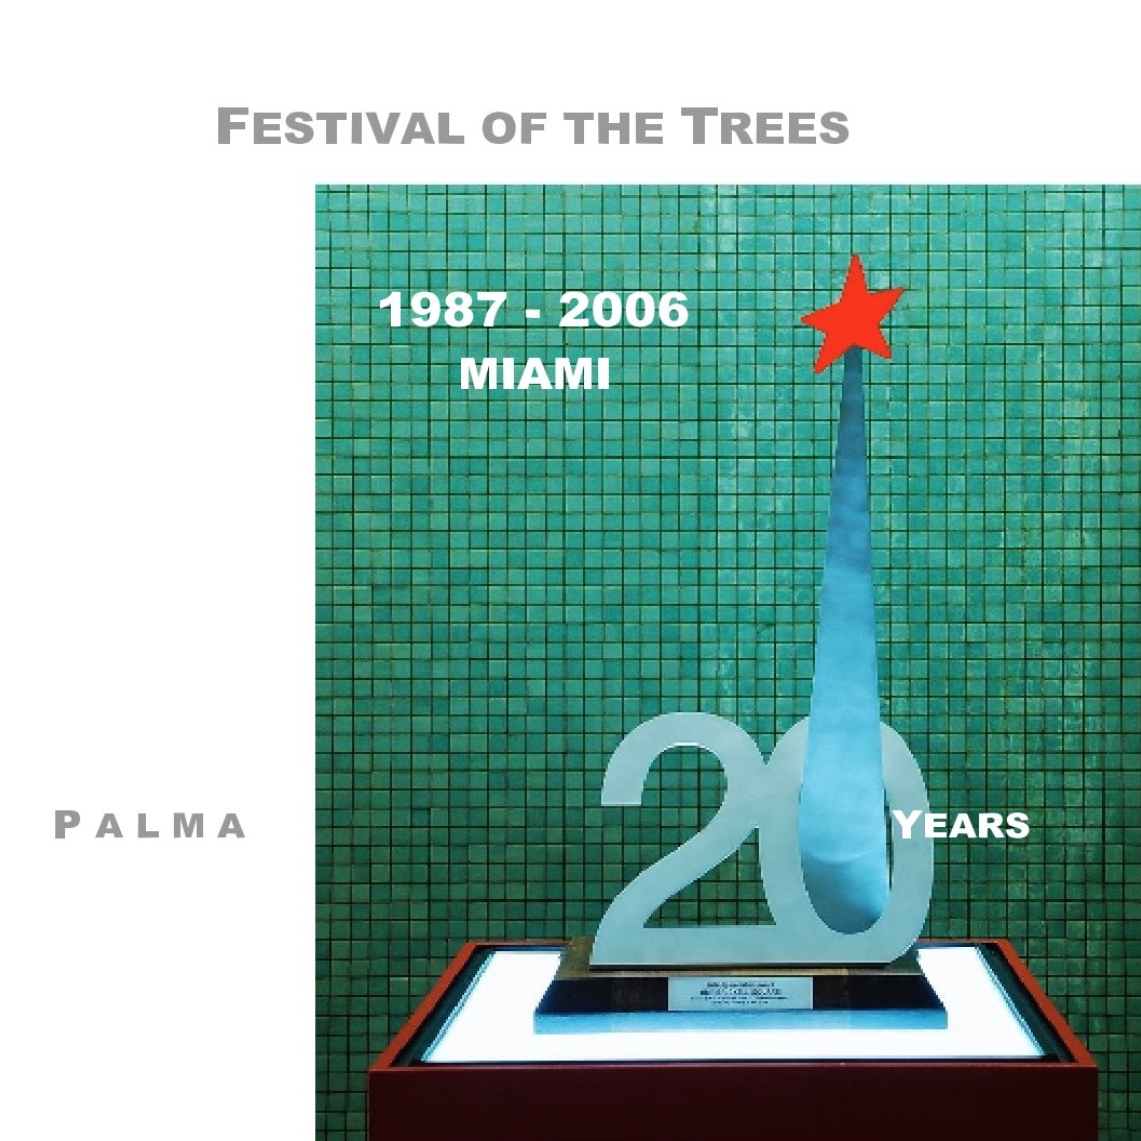 "festival of the trees - the first 20 years 1987-2006 of the event that became miami's official opening of the christmas season. architects and interior designers design, build and exhibit their interpretation of the christmas tree.7"" x 7"" square formatpreview and purchase at blurb.com"